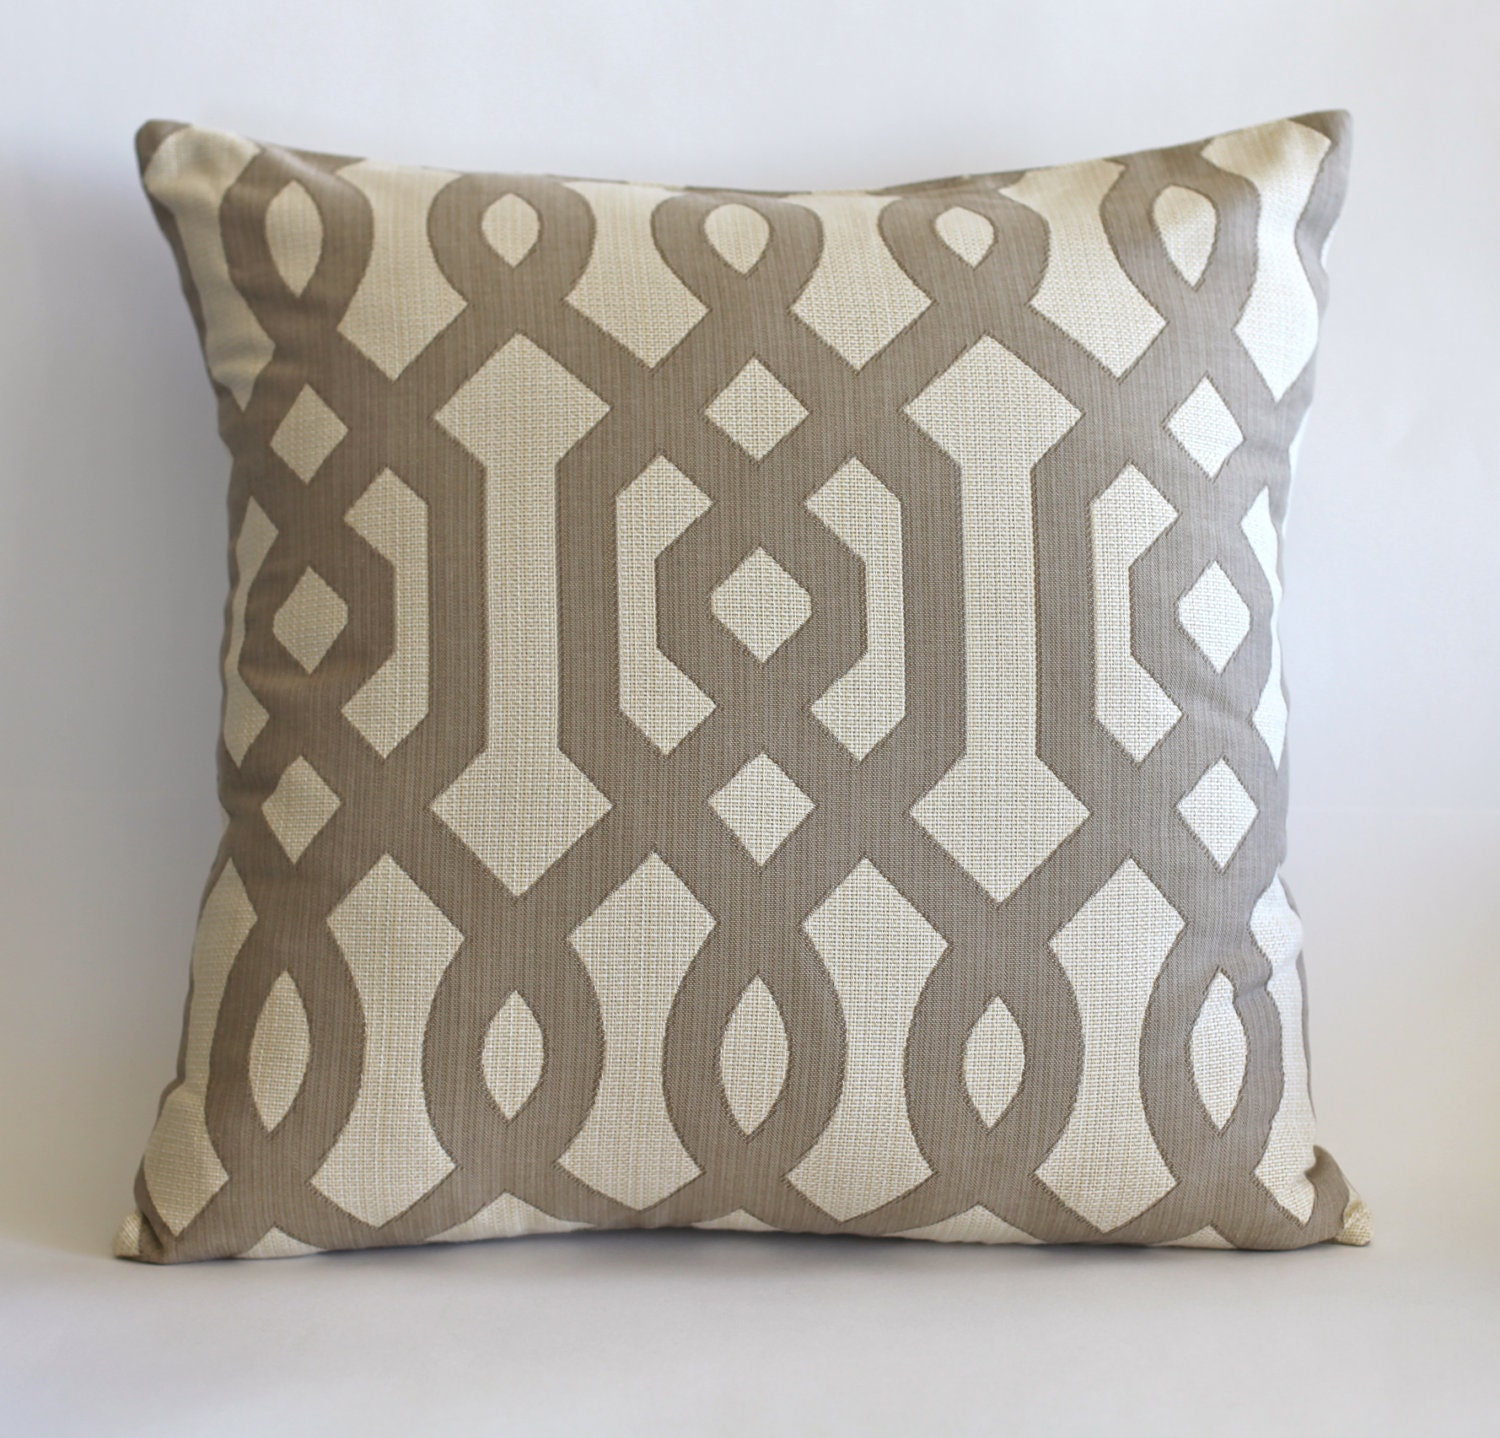 20x20 lattice print design taupe and beige on luxurious linen